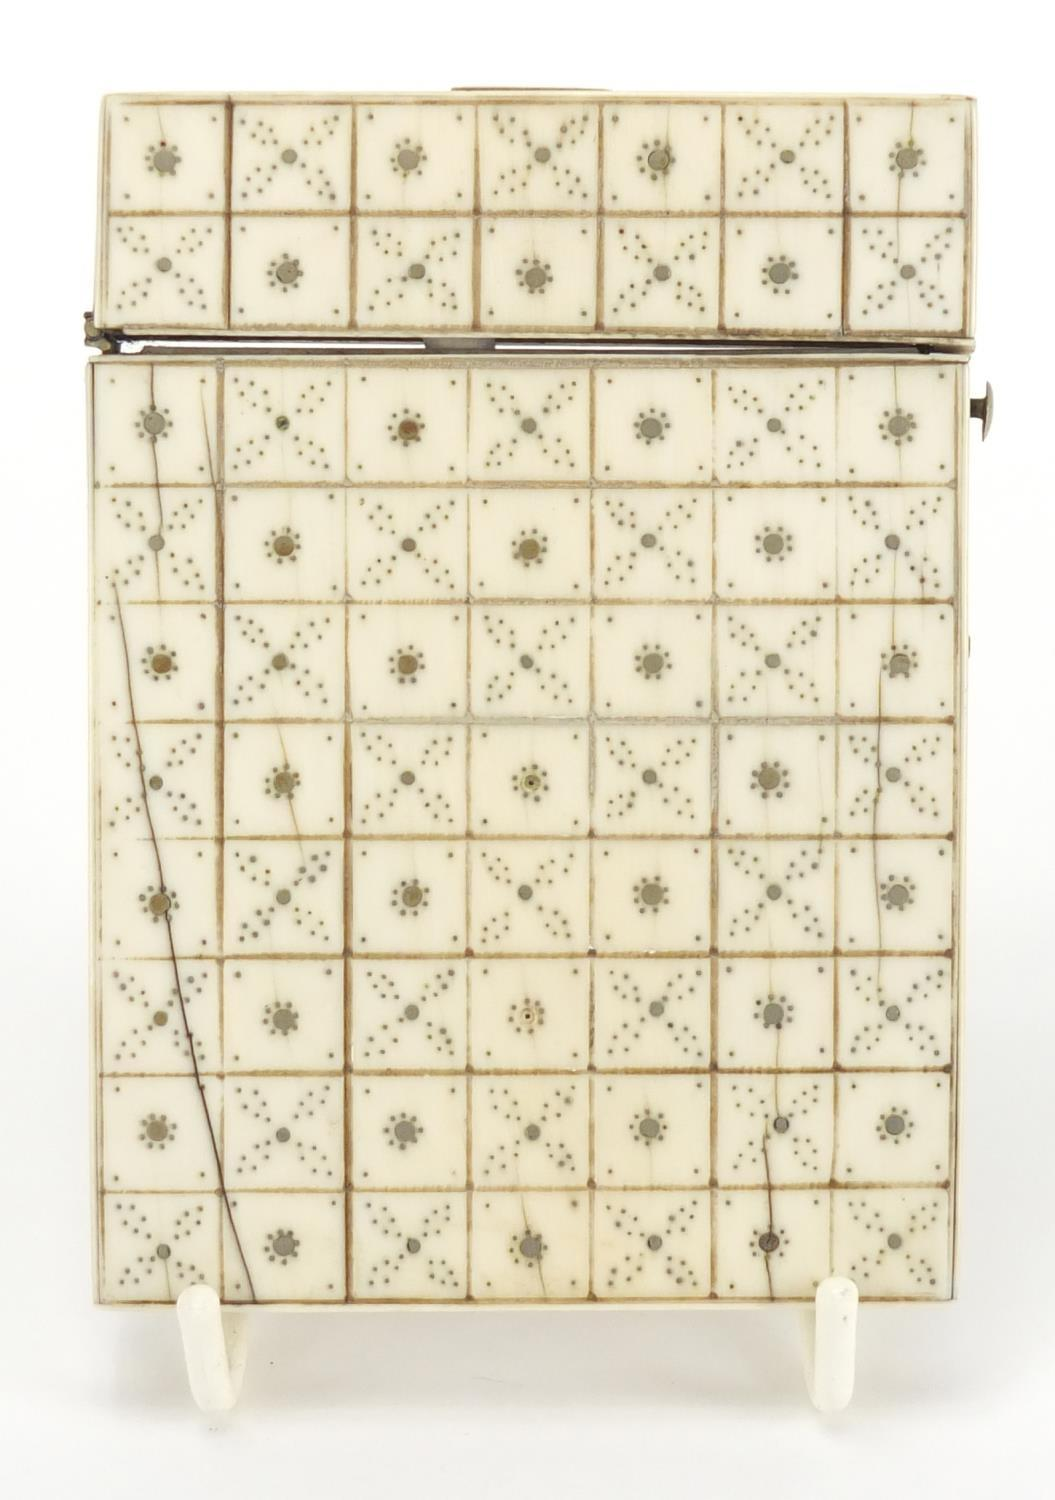 Lot 12 - Georgian ivory and pique work calling card case, 10.5cm x 7.5cm :For Further Condition Reports